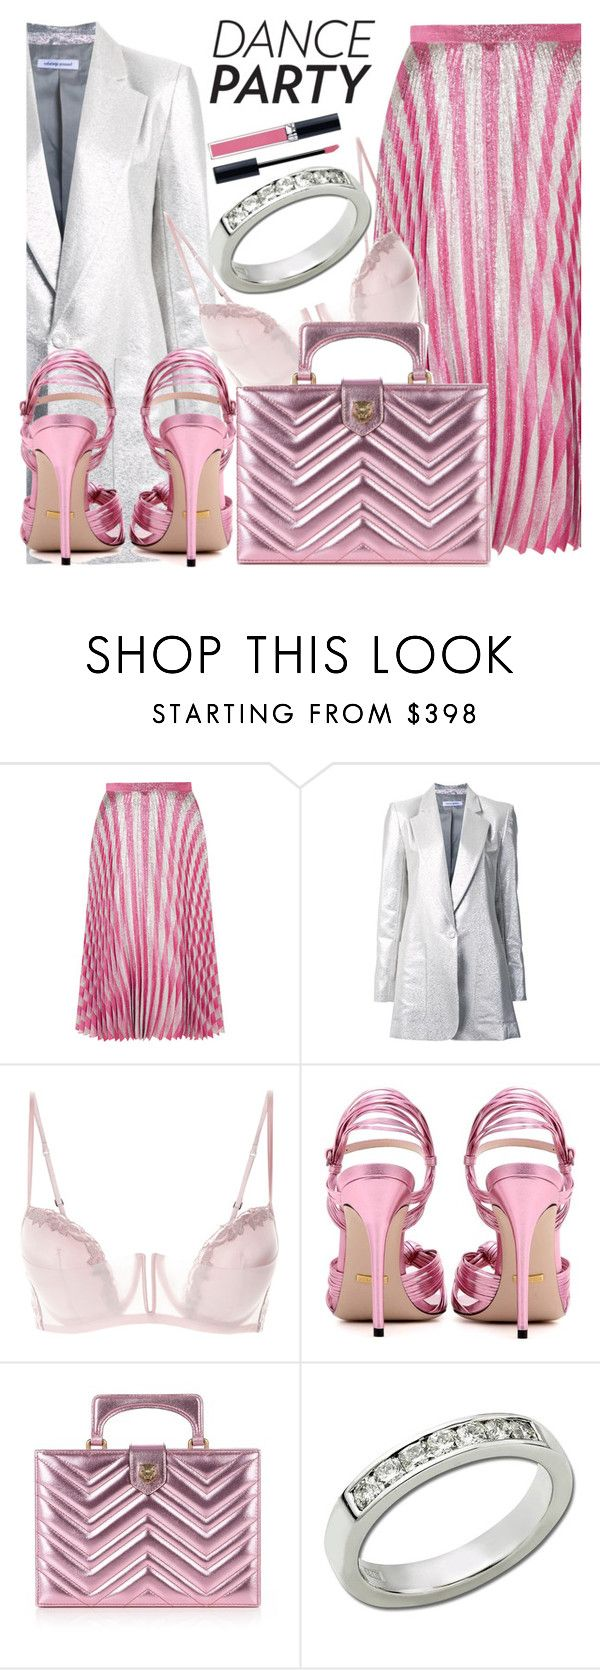 """""""Anastazio-dance party"""" by anastazio-kotsopoulos ❤ liked on Polyvore featuring Gucci, Bianca Spender, Anastazio and Christian Dior"""